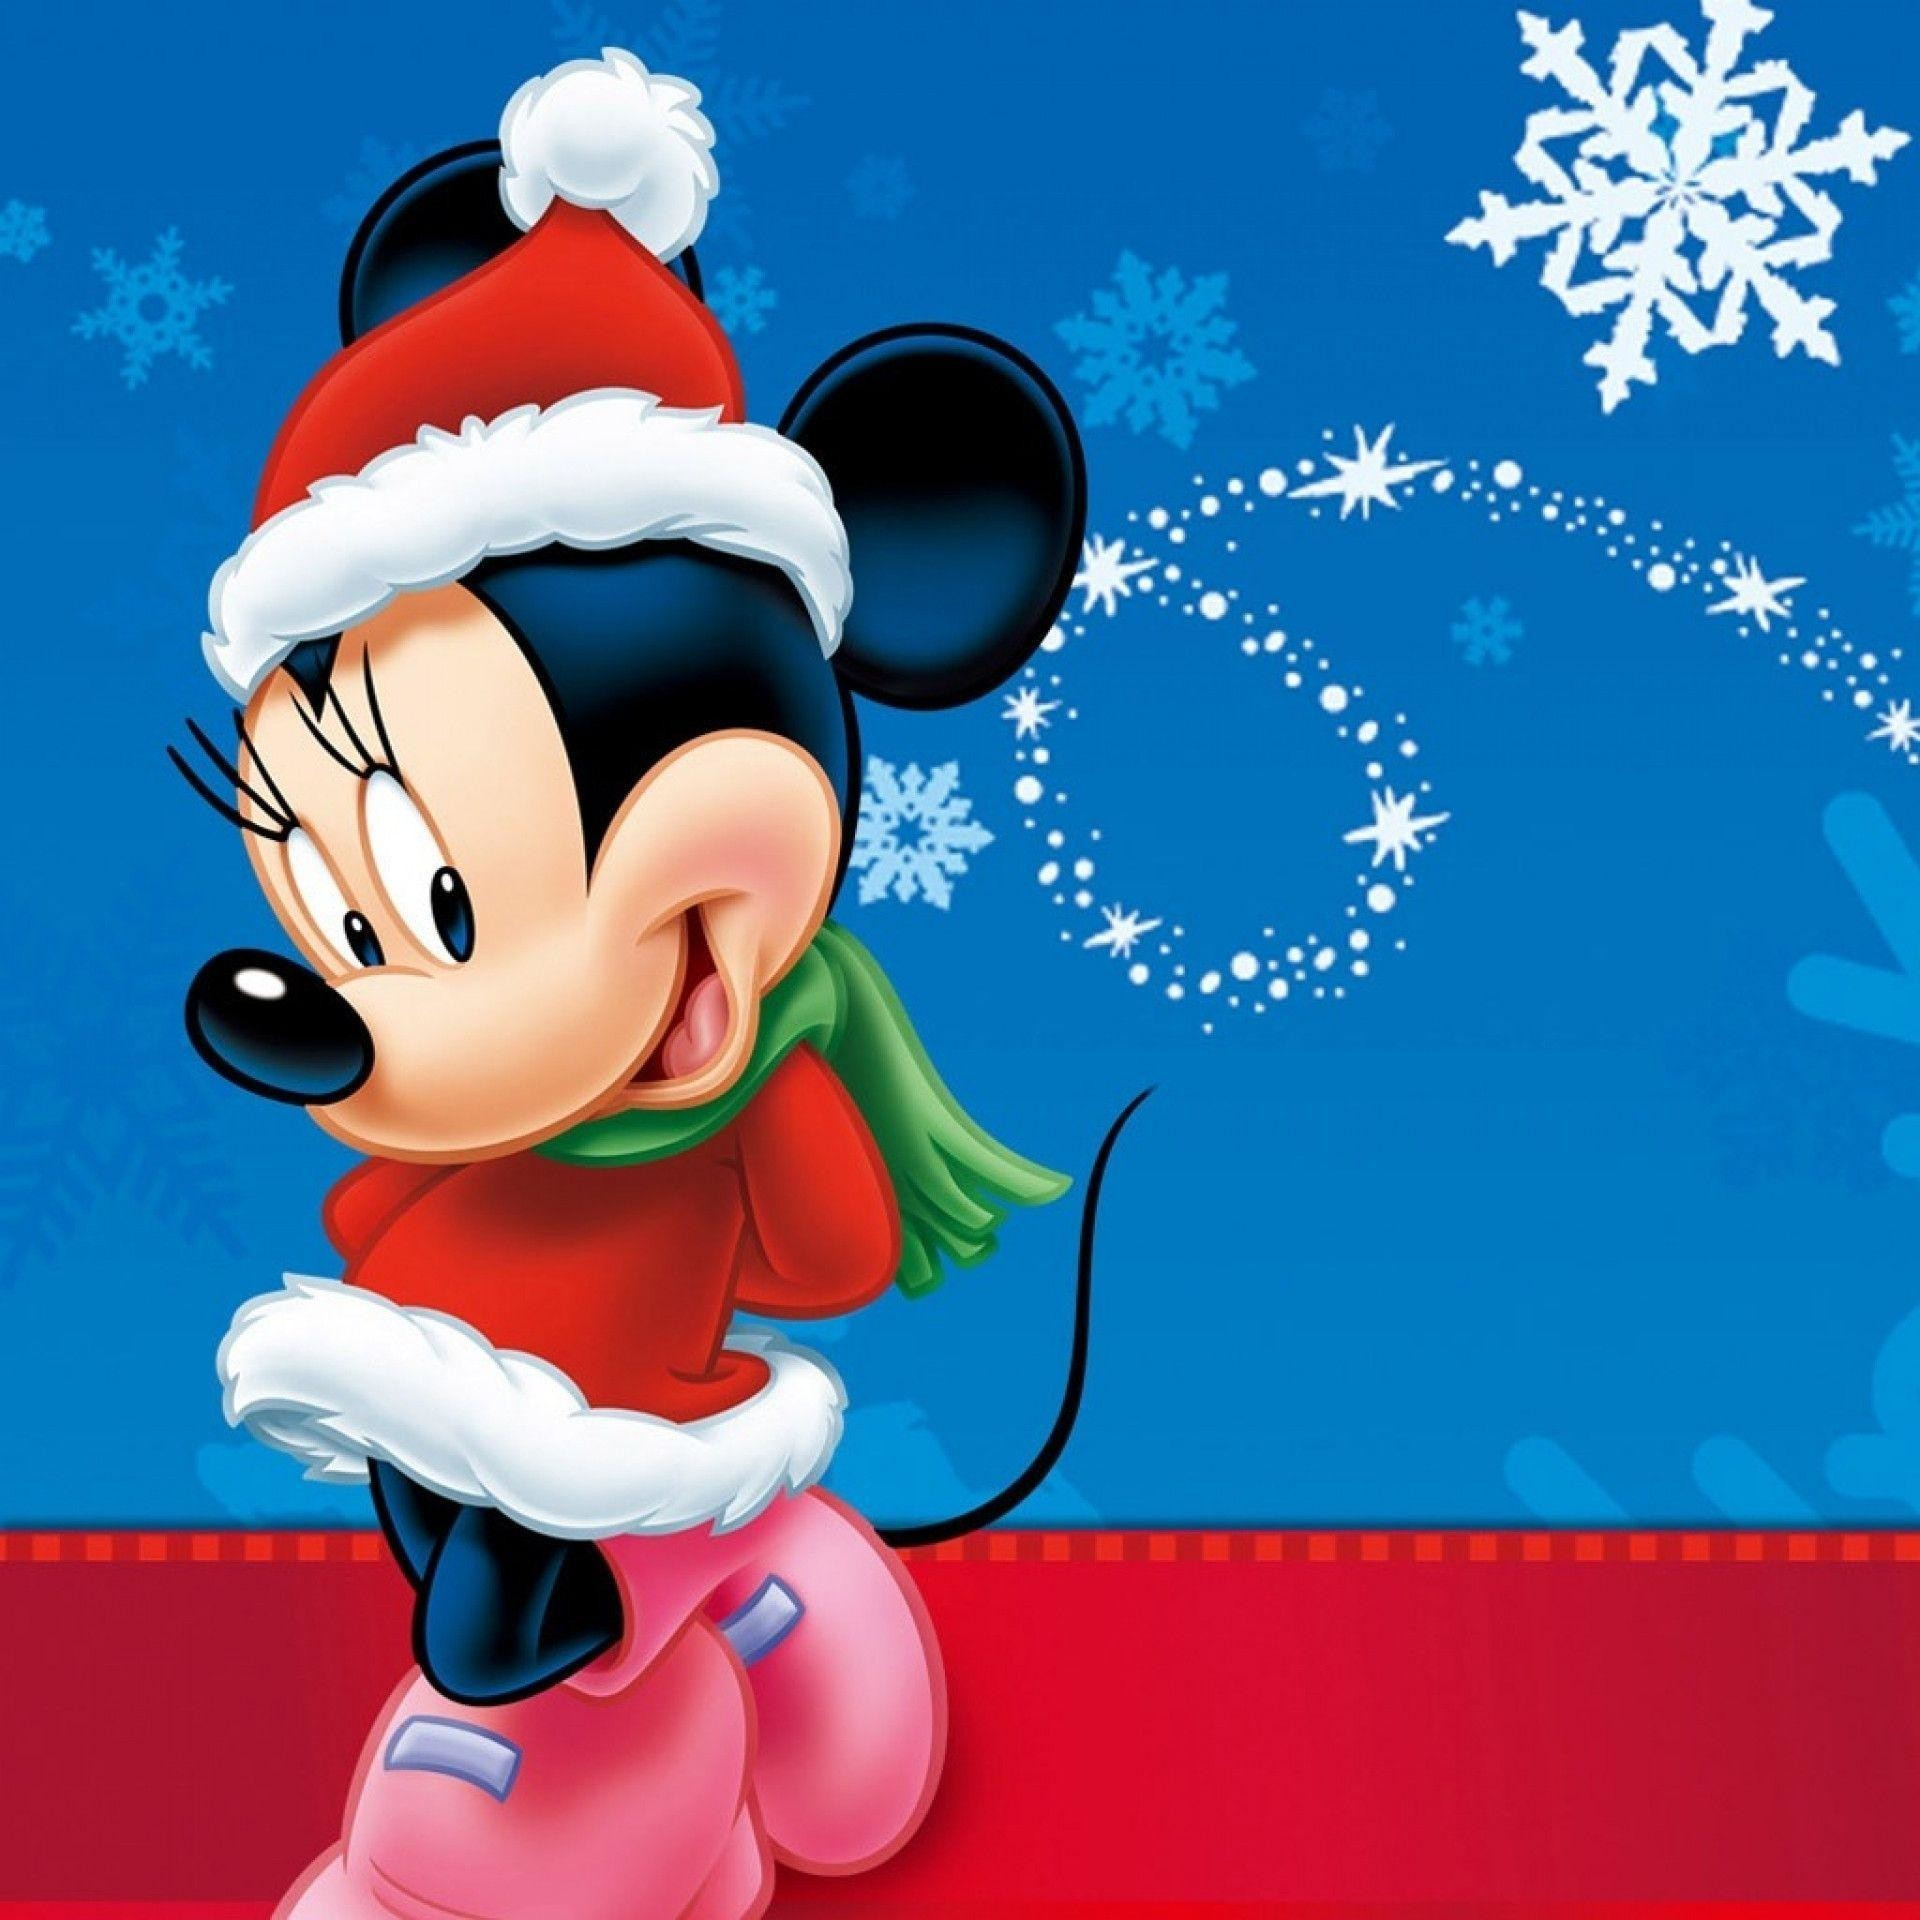 1920x1920 Mickey Mouse Live Wallpaper Download - Mickey Mouse Live Wallpaper .